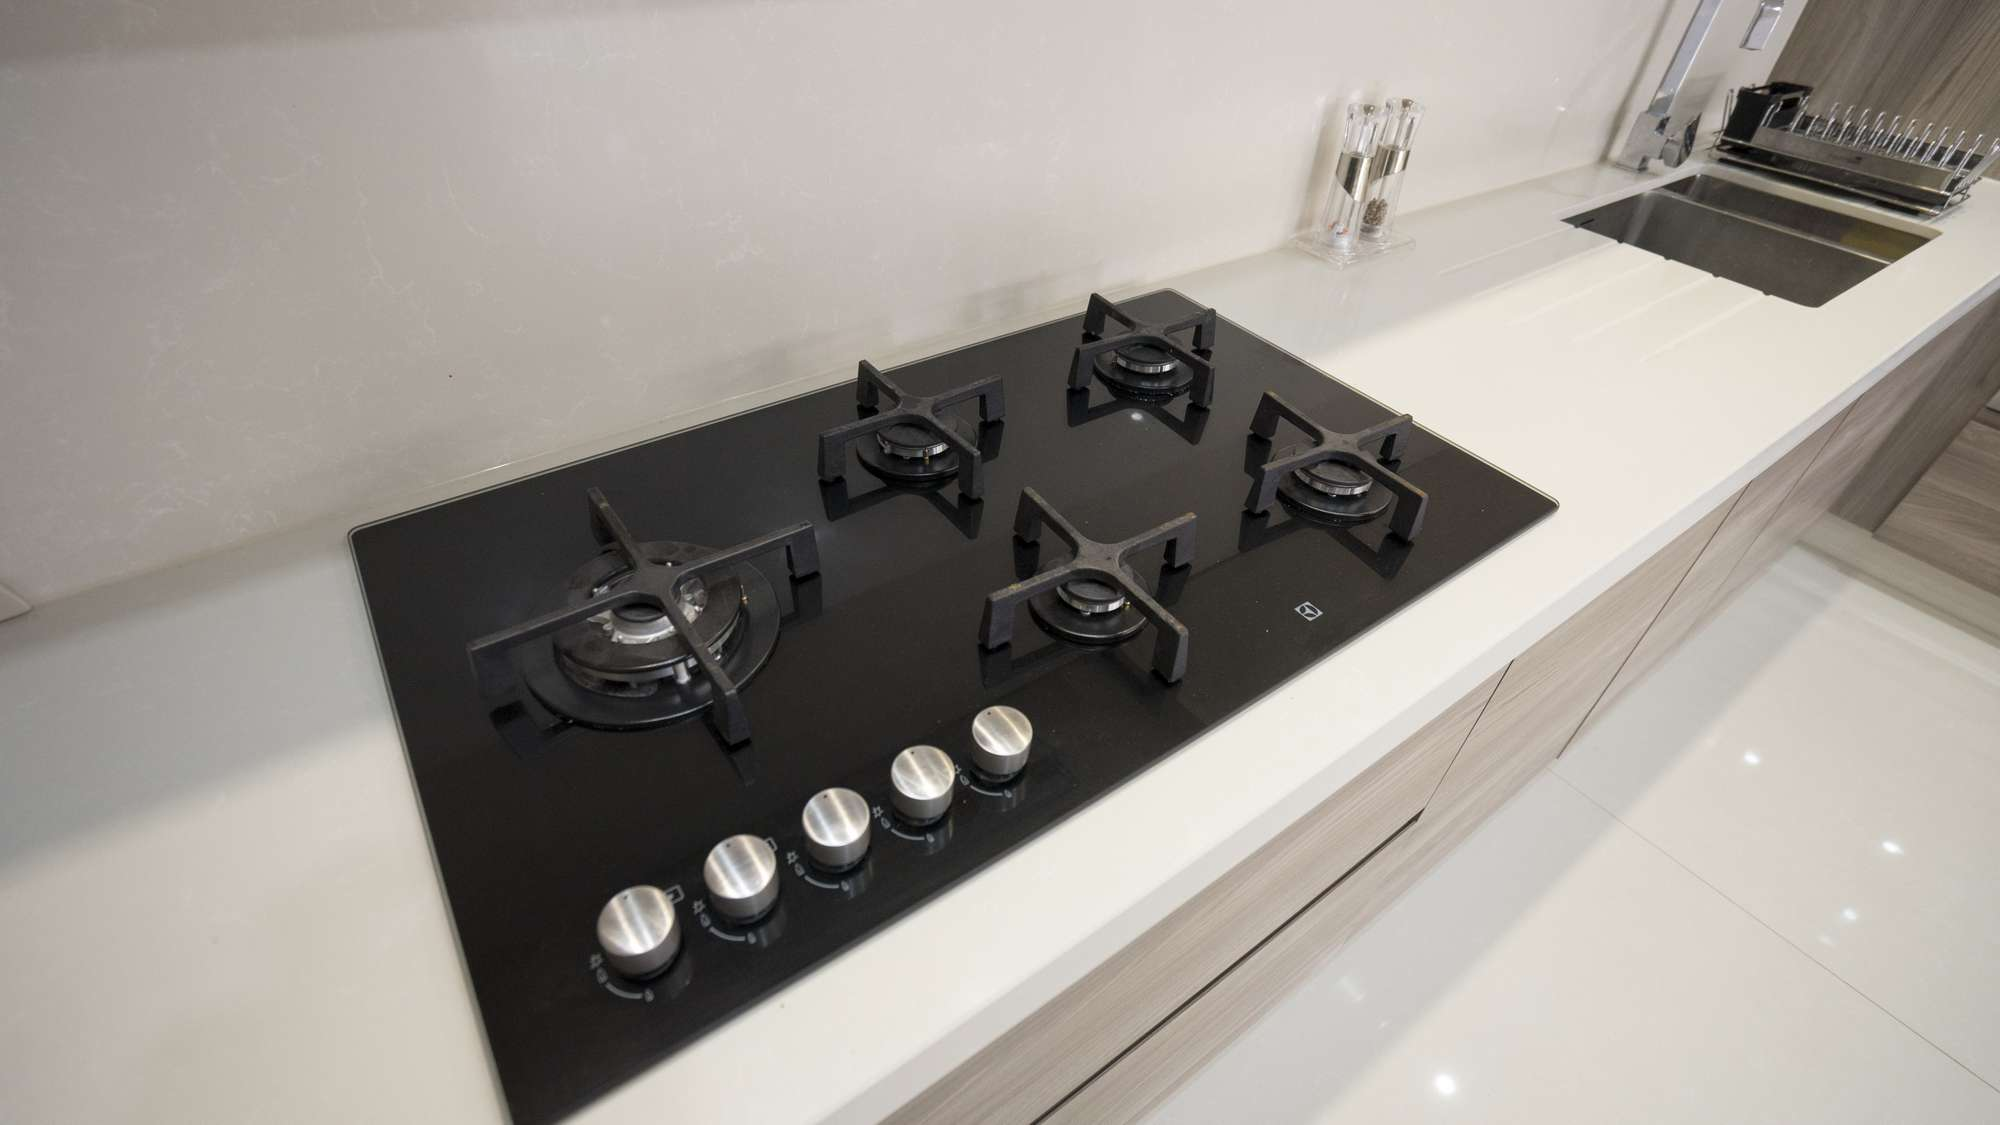 Close up of the high end cooking hob in black ceramic.